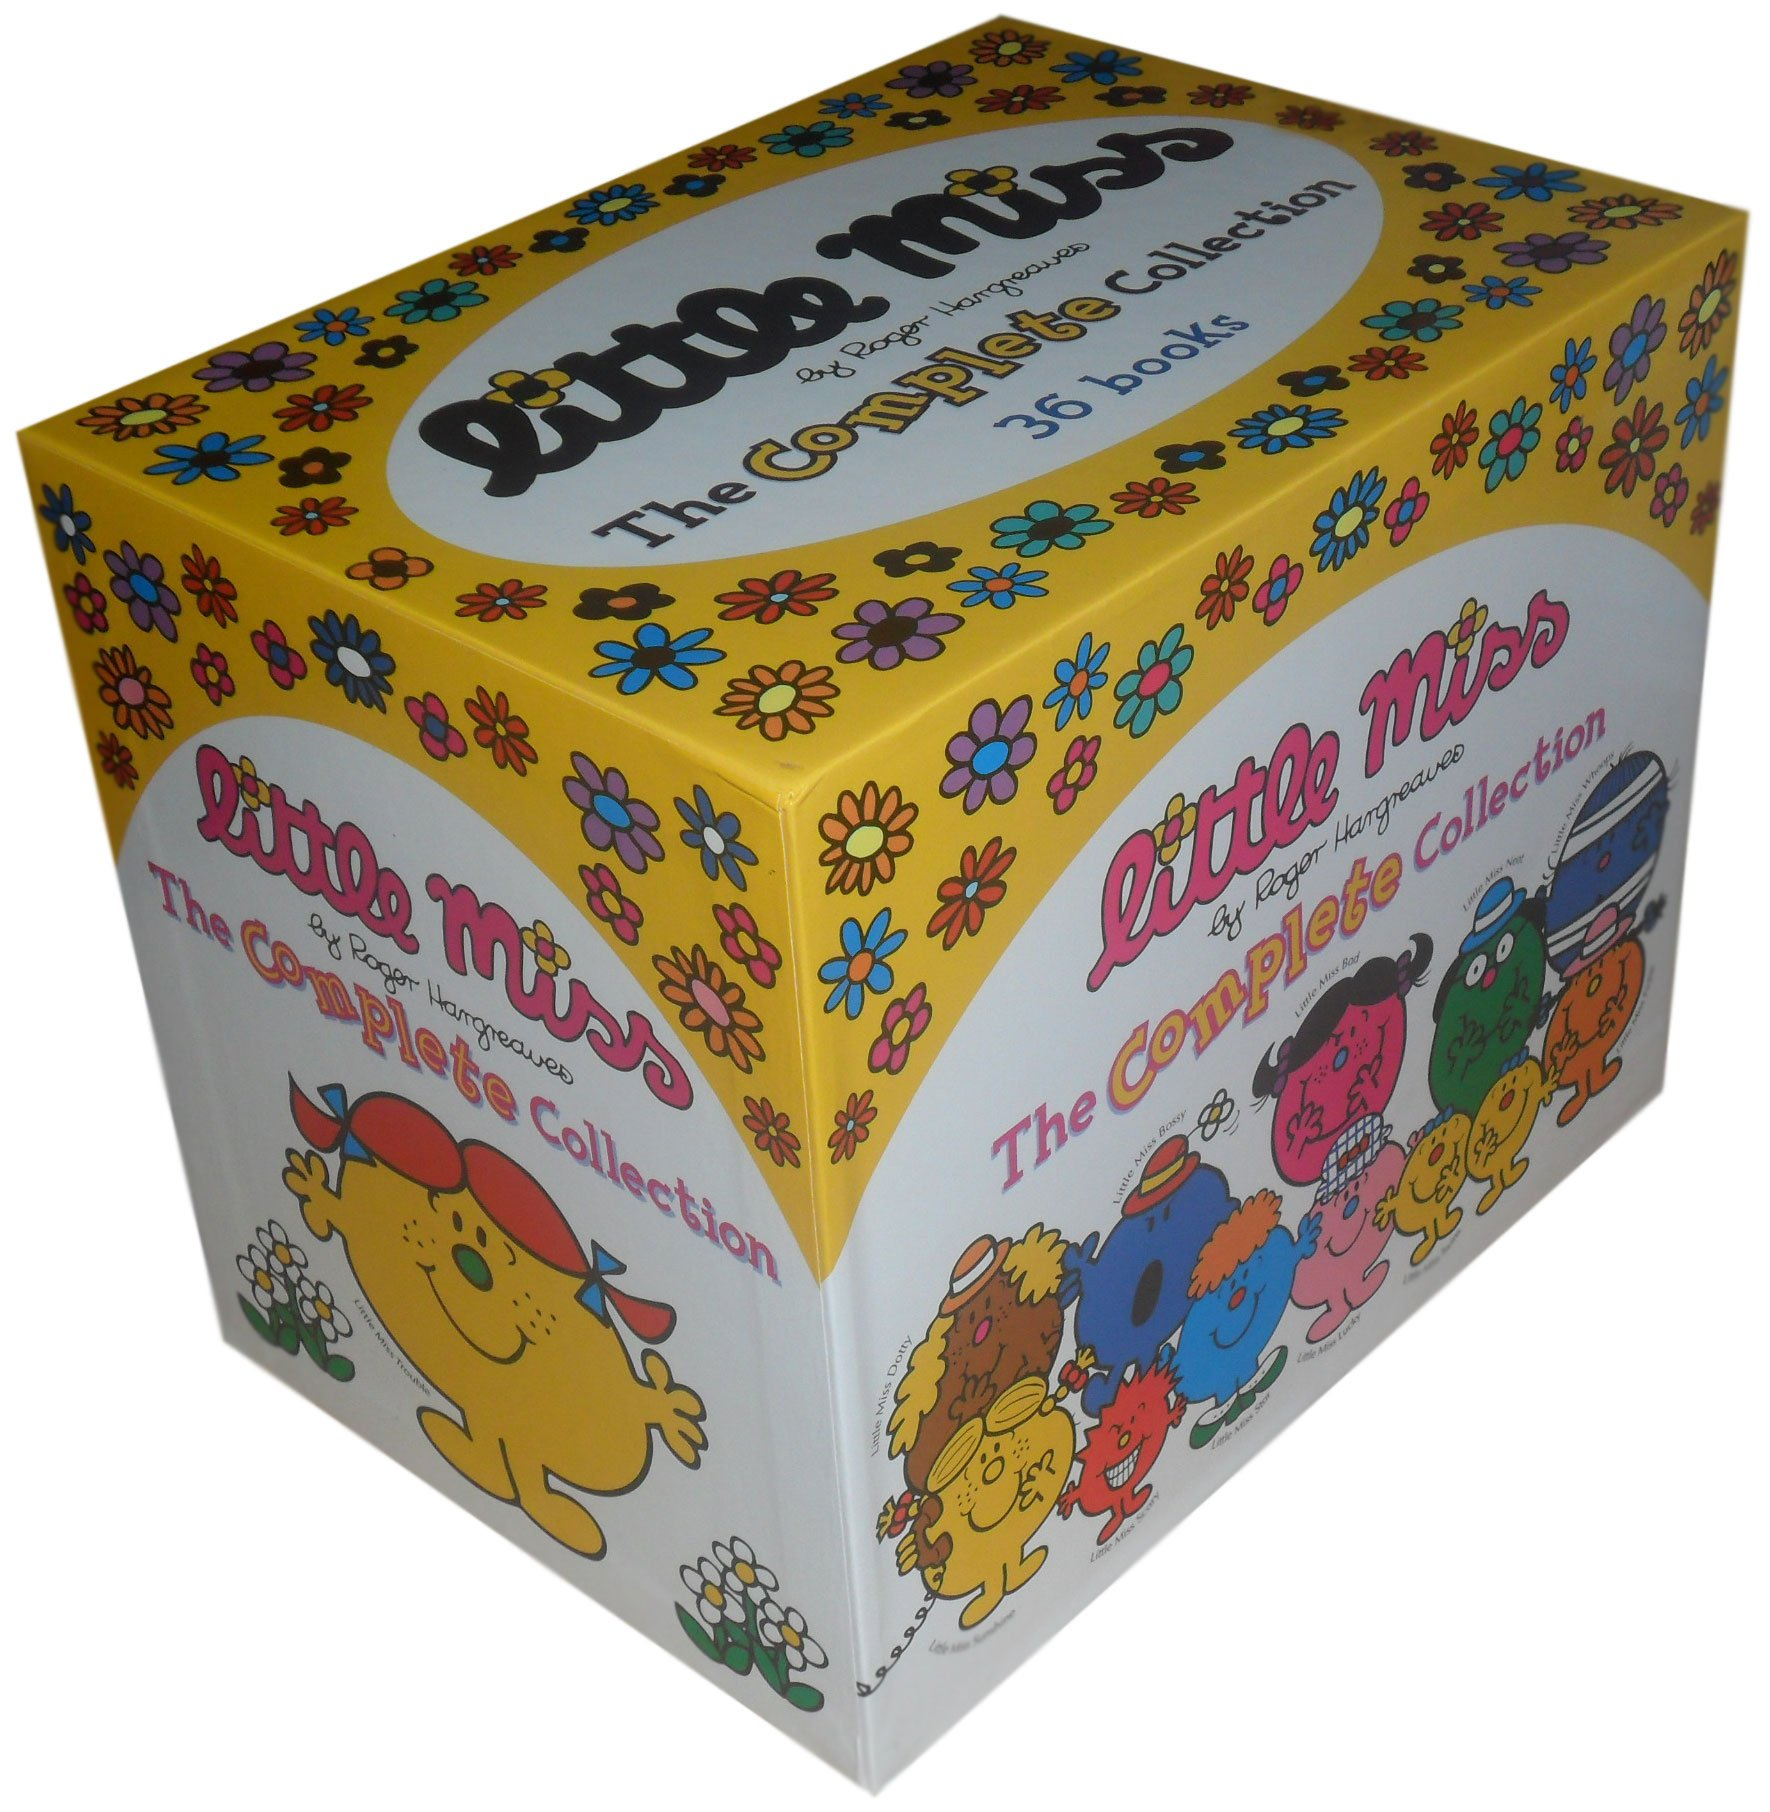 Little Miss Complete Collection Books Box Set By Roger Hargreaves